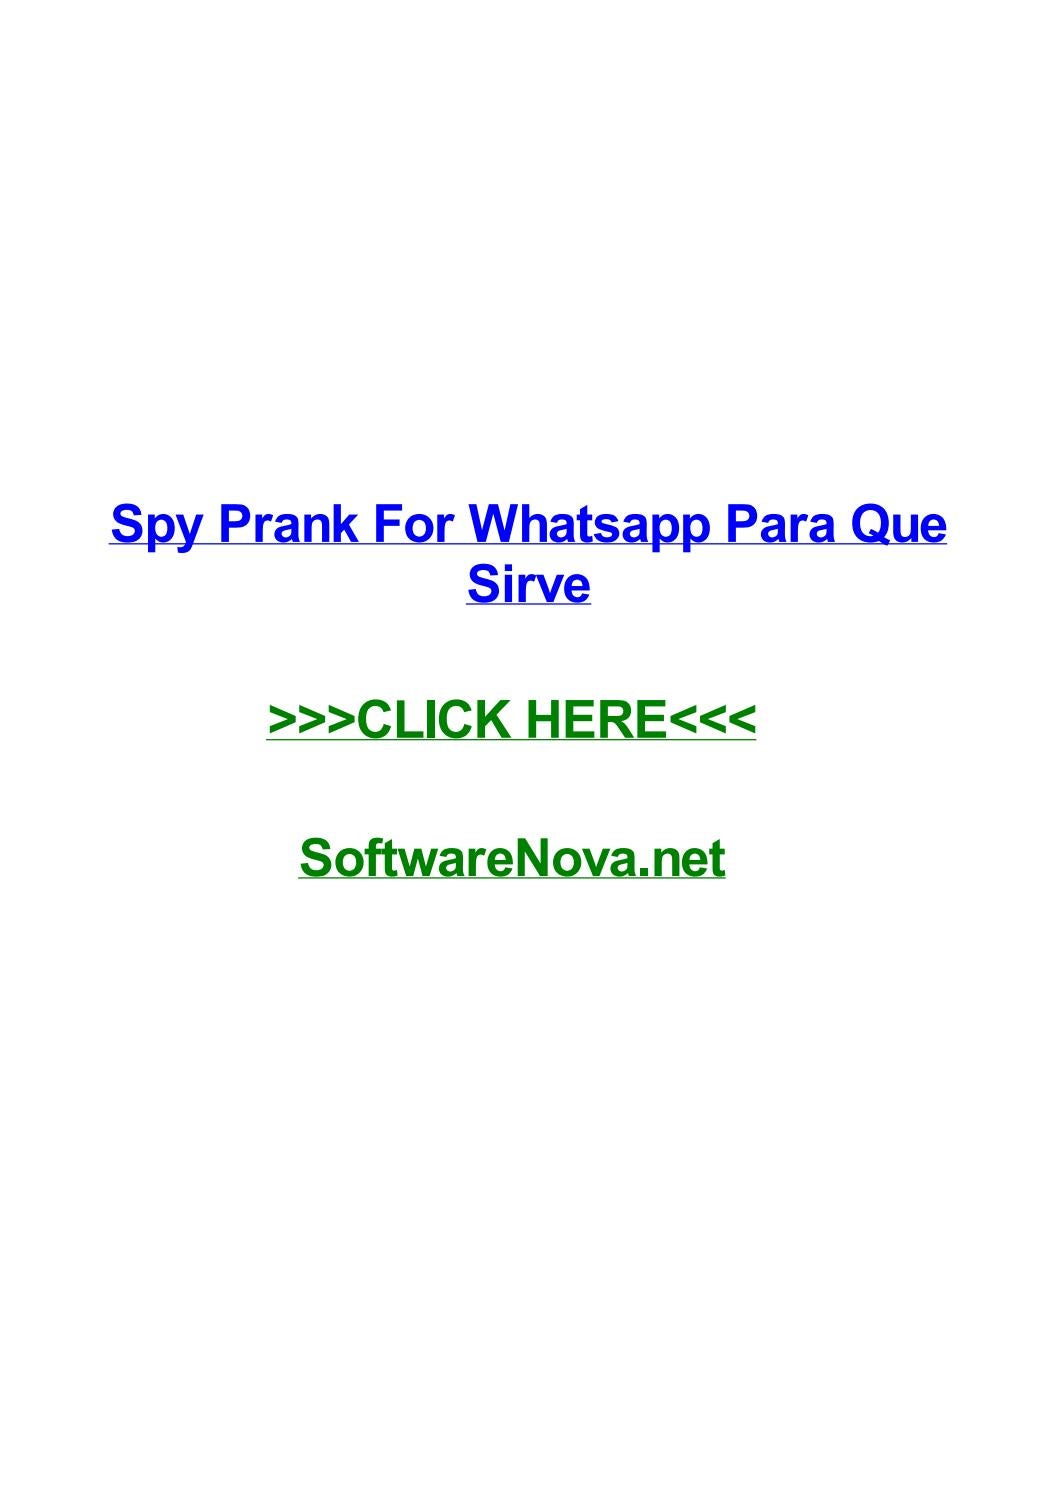 Spy on text messages using FreePhoneSpy- make spying easier with this tool